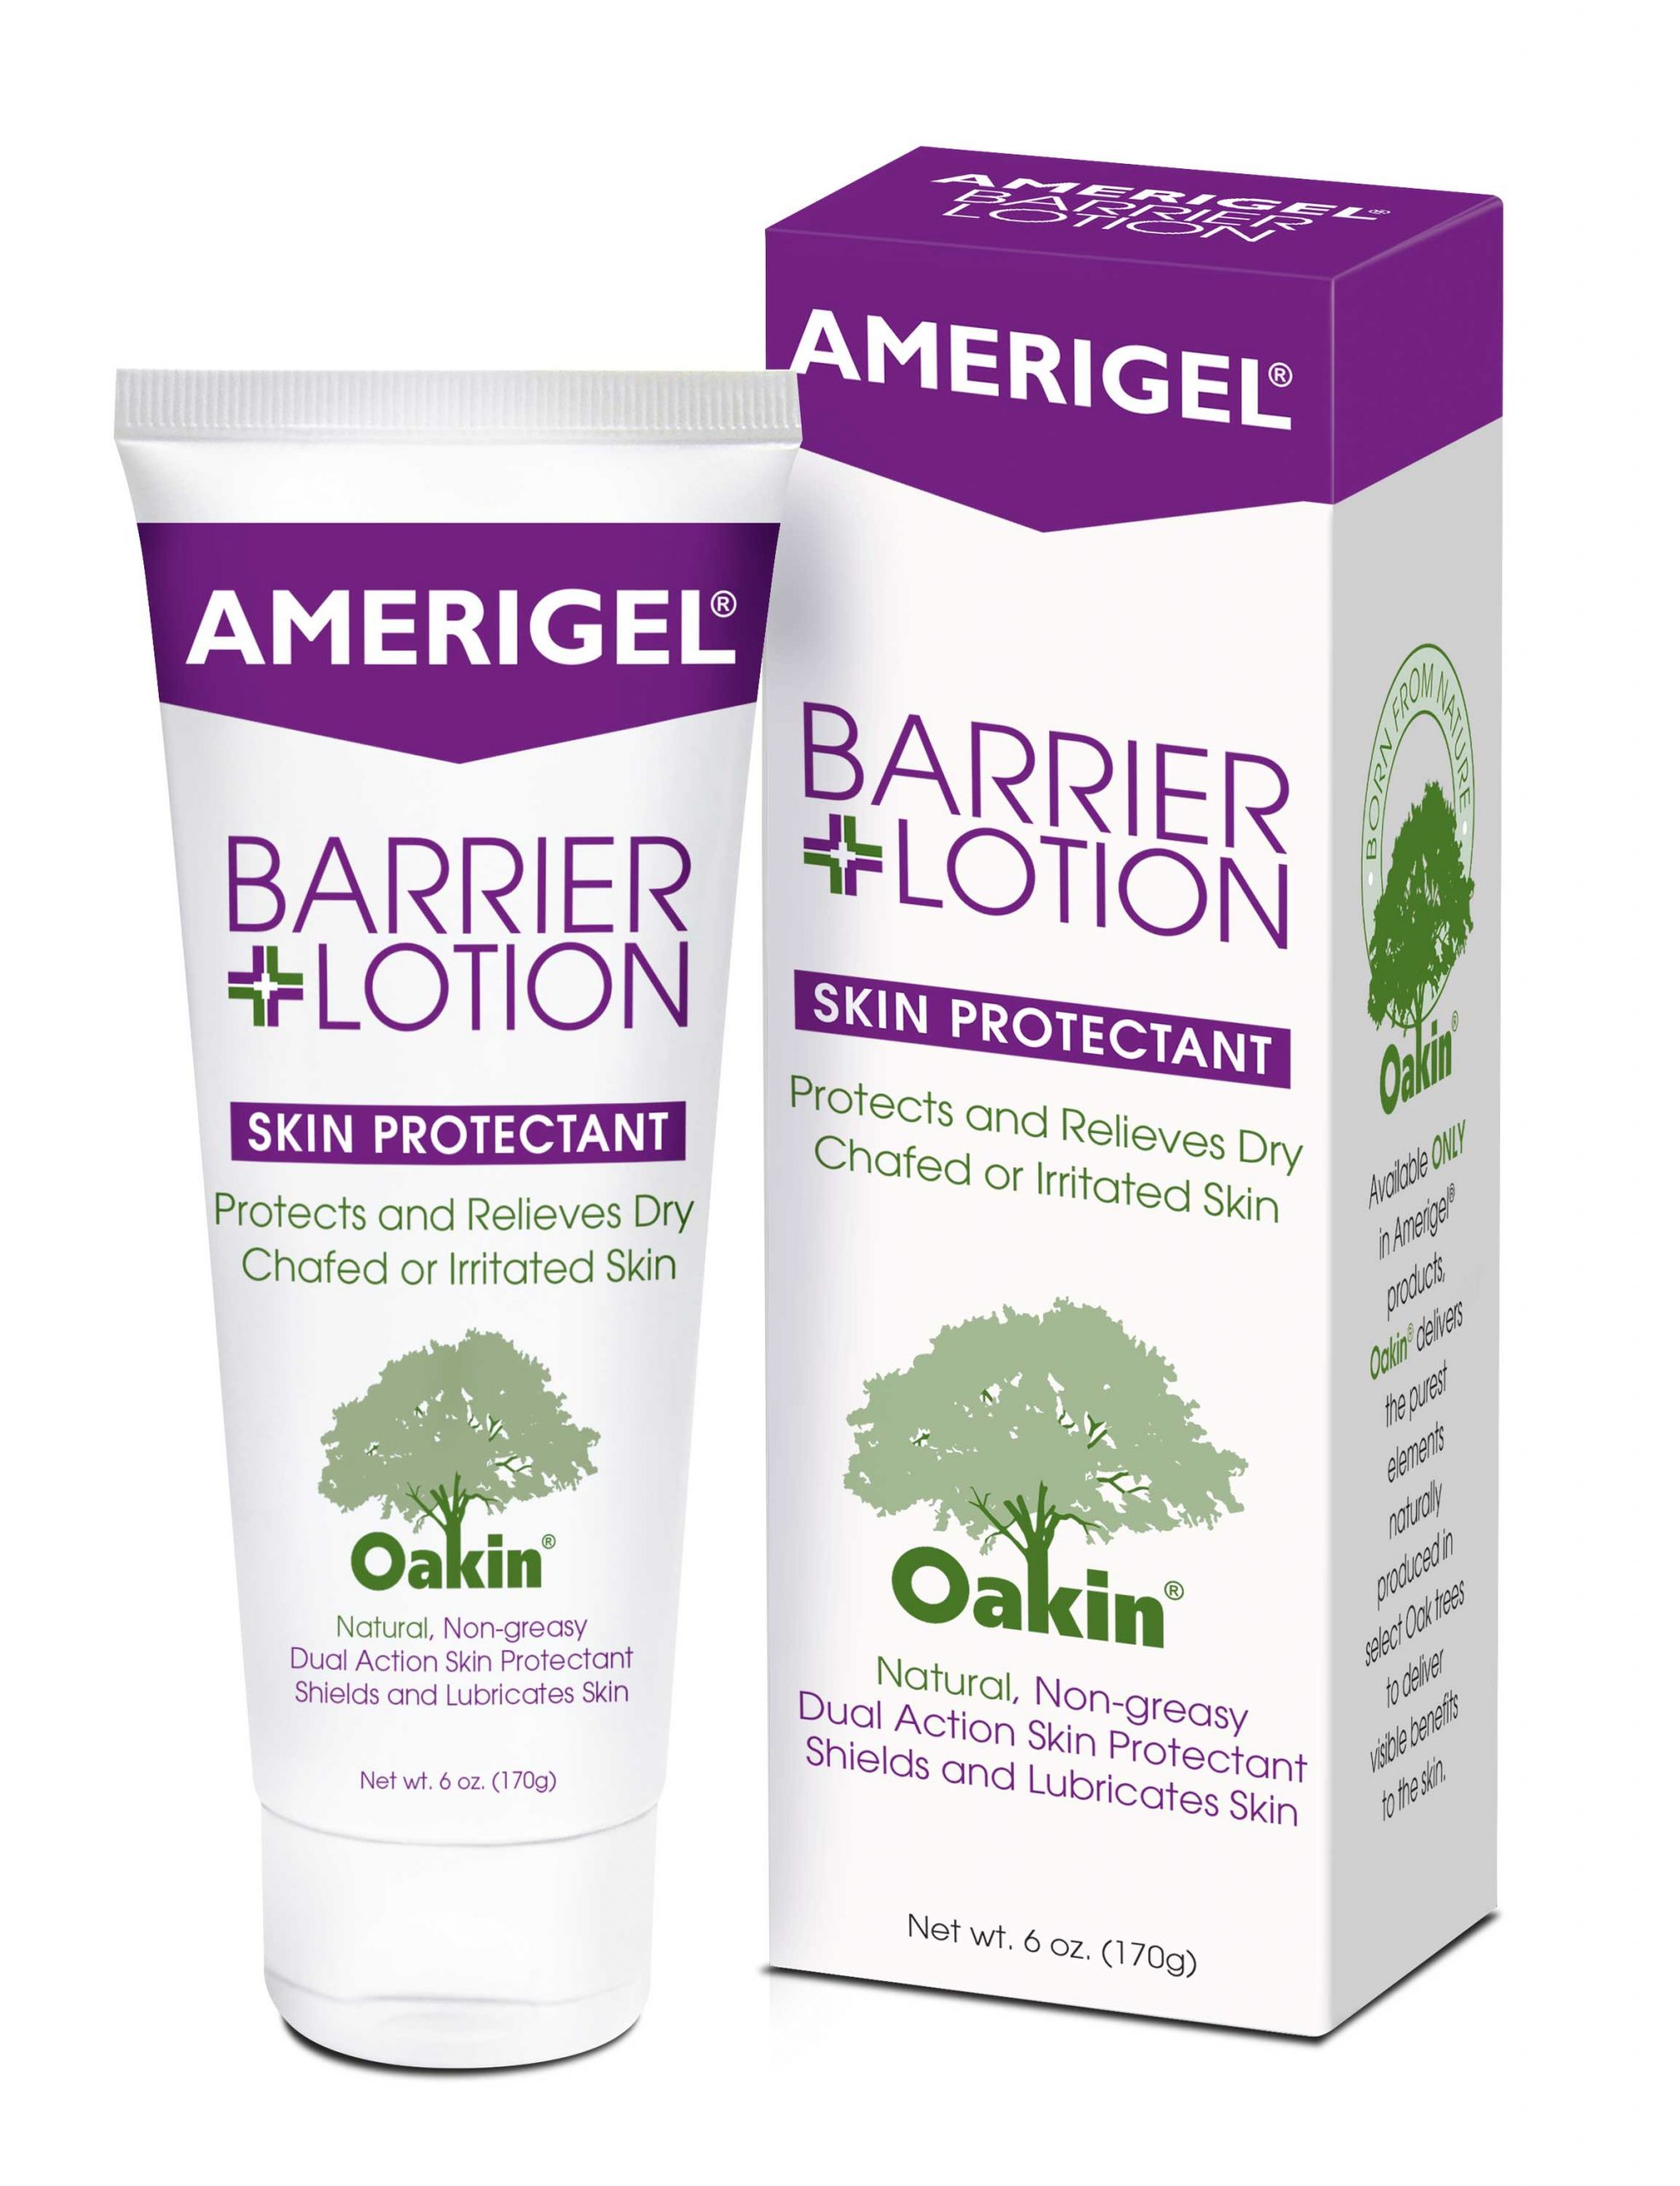 6 oz. tube of AMERIGEL Care Lotion with its box